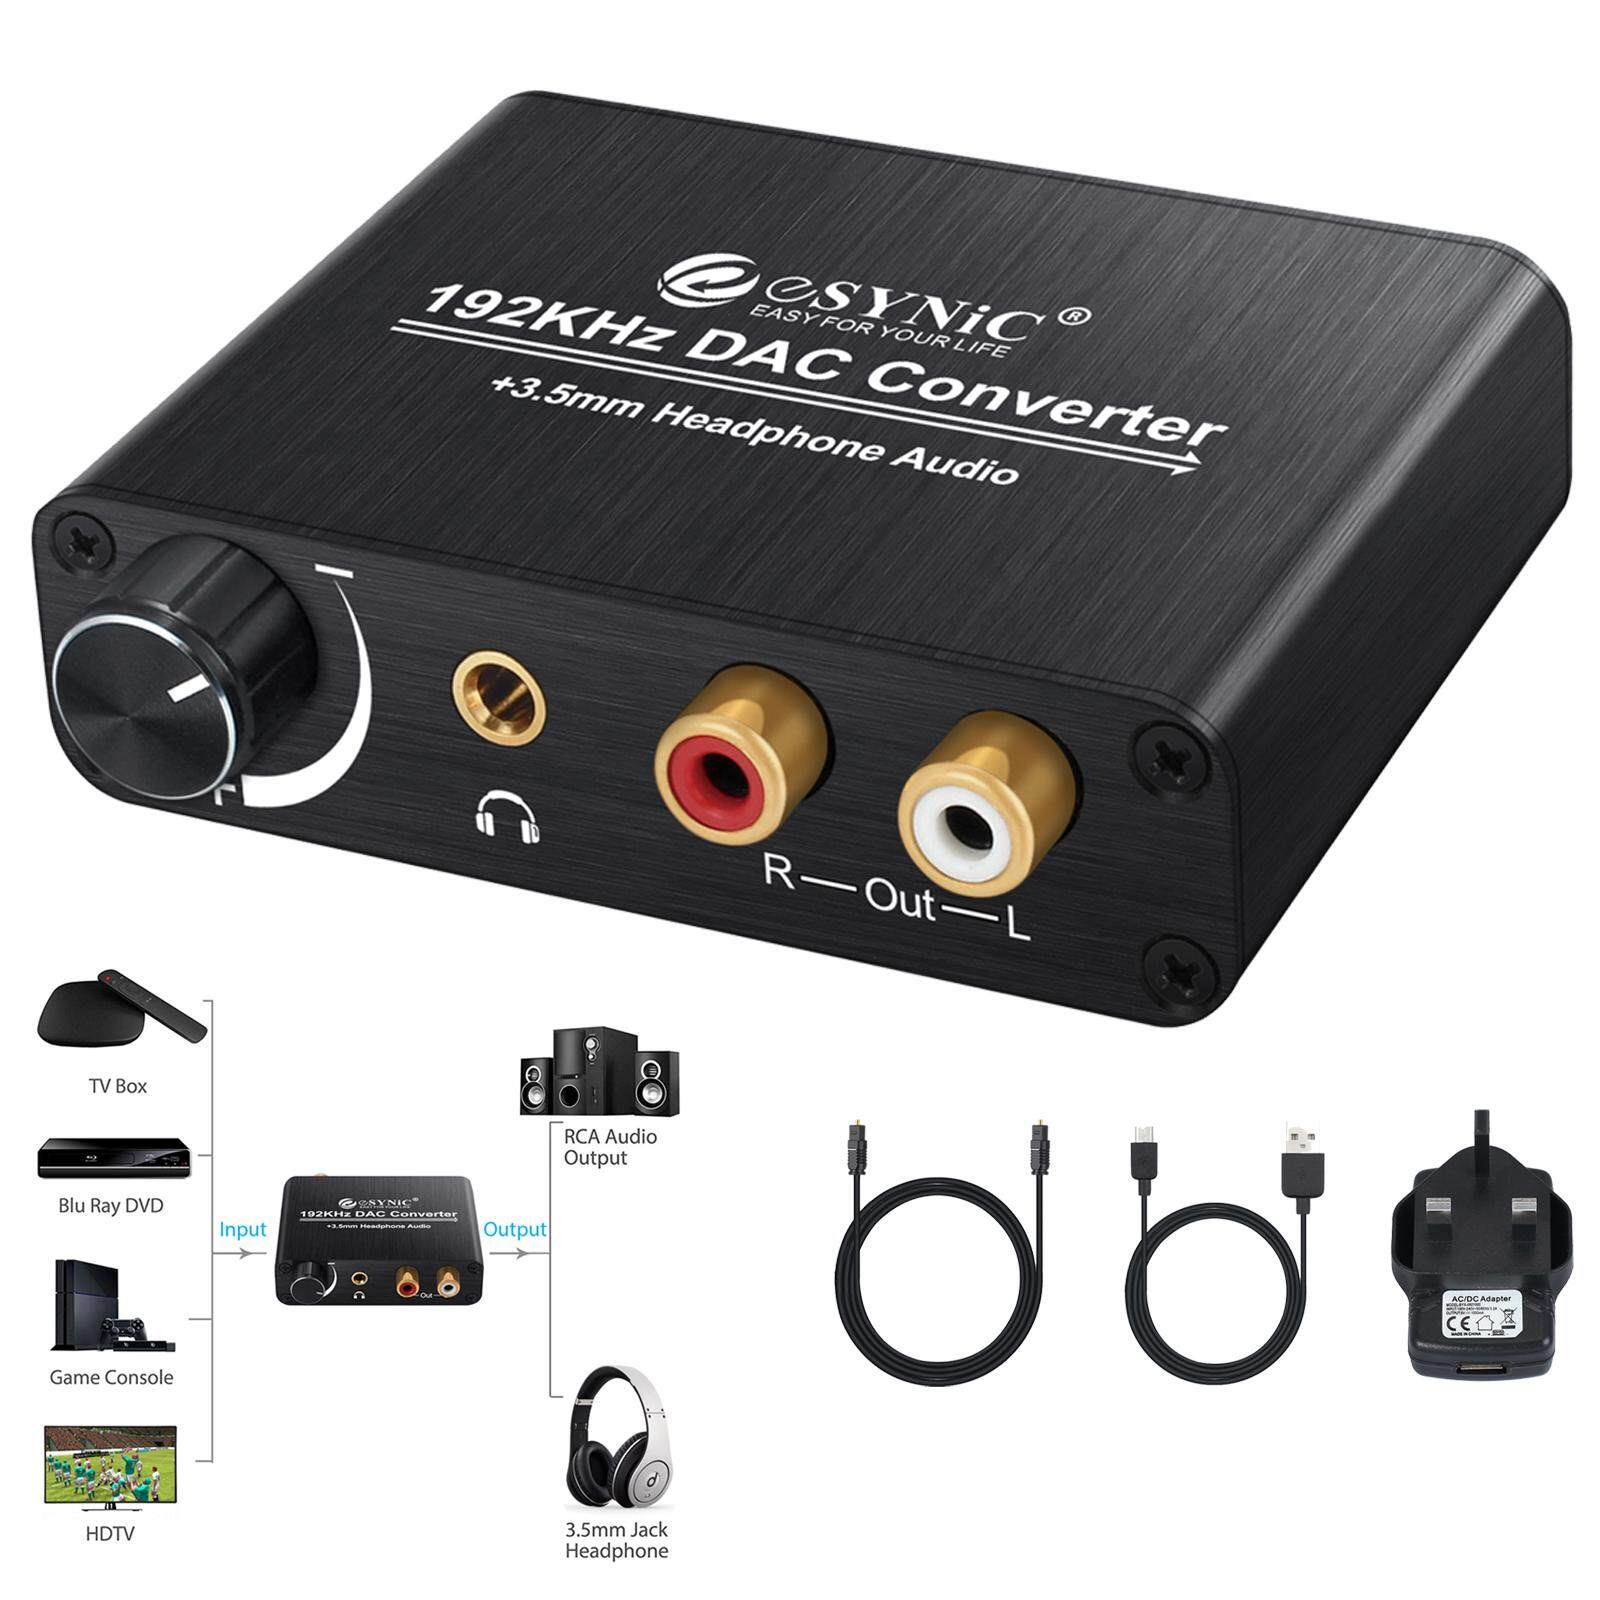 Home Theater Systems For The Best Prices In Malaysia Cable Wiring Antenna Internet Diy Chatroom 192khz Aluminum Dac Converter Digital Optical Coaxial Toslink To Analog 35mm